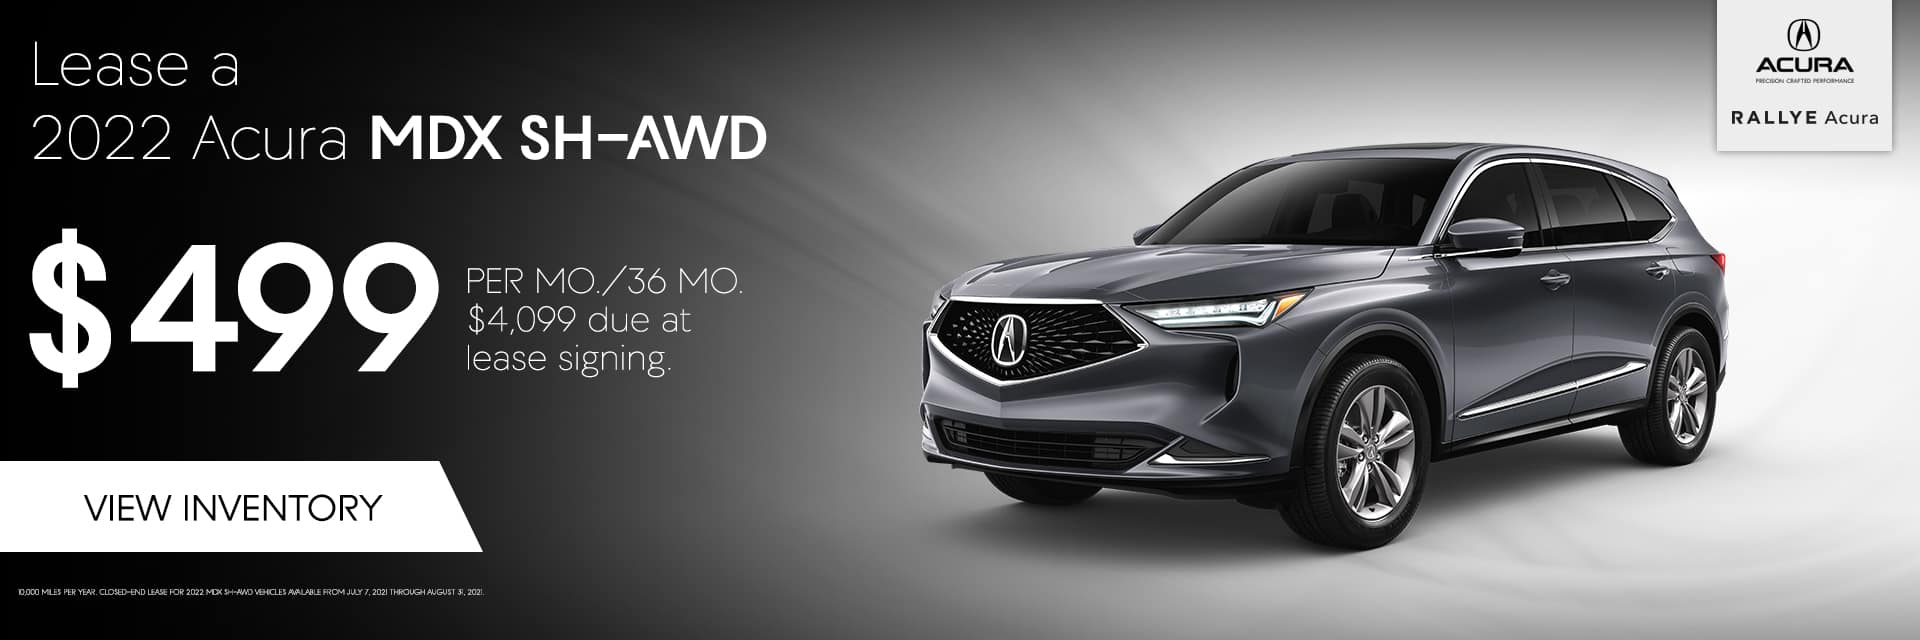 Lease a 2022 MDX SH-AWD $499.00 PER MO./36 MO. $4,099.00 due at lease signing.